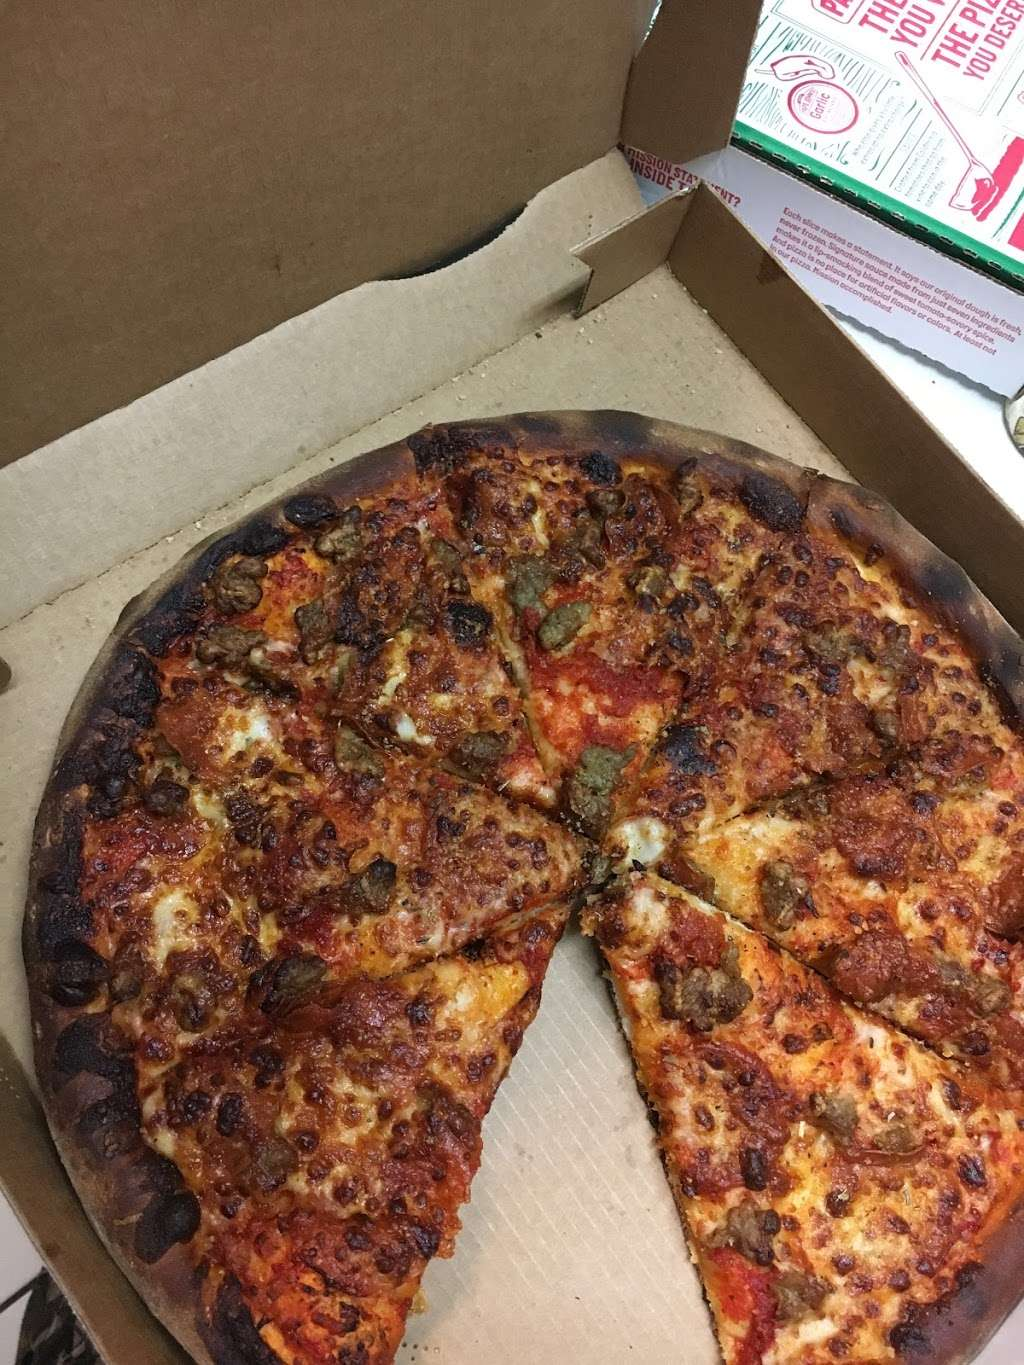 Papa Johns Pizza - restaurant  | Photo 7 of 9 | Address: 2376 Lavon Dr Ste 128, Garland, TX 75040, USA | Phone: (972) 244-4900